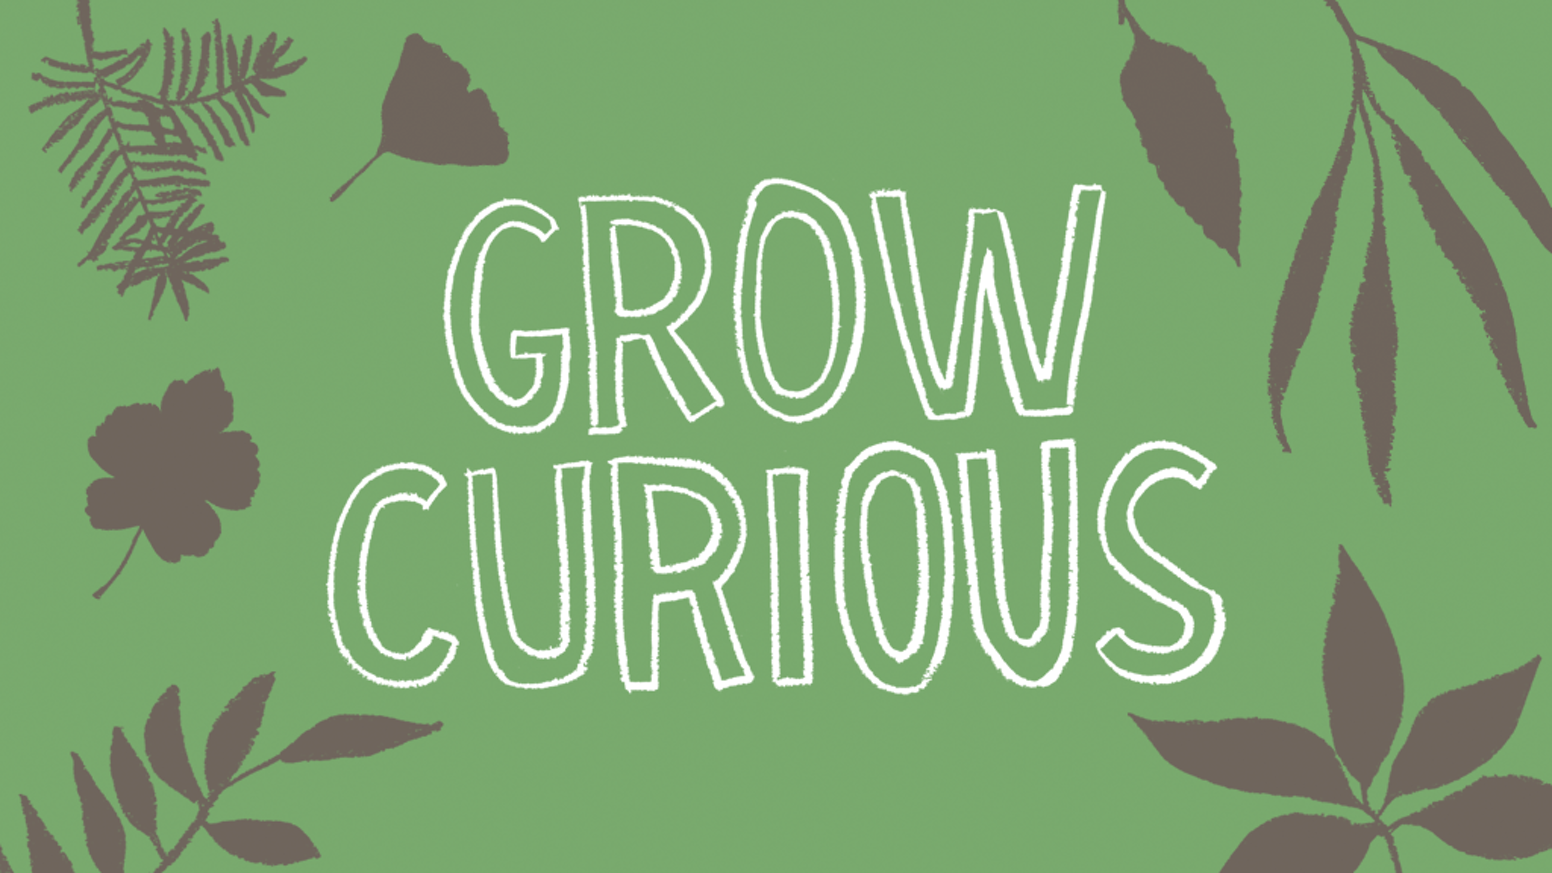 A guidebook of curious and creative activities to cultivate joy, wonder, and discovery in you and your garden.